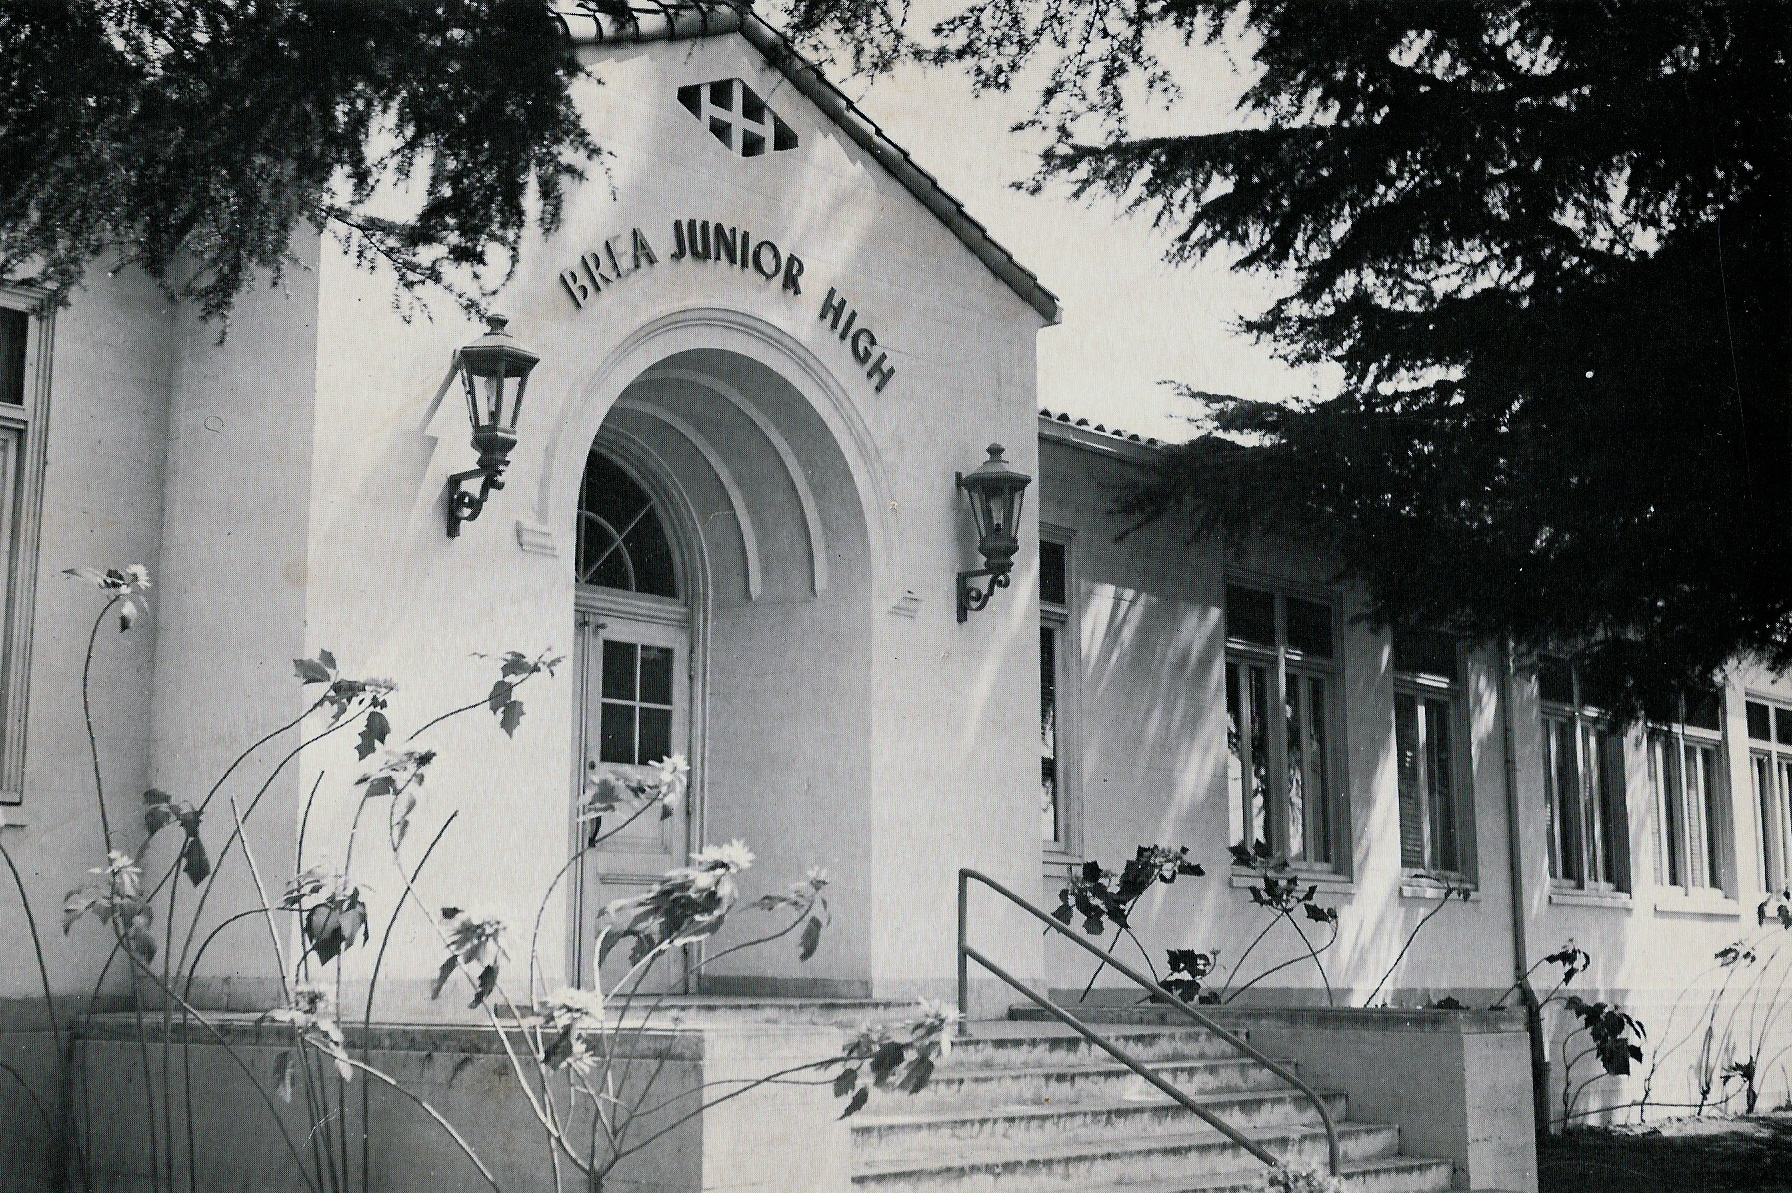 Former main entrance to Brea Jr. High School, (Photo Courtesy of Terry Sullivan)